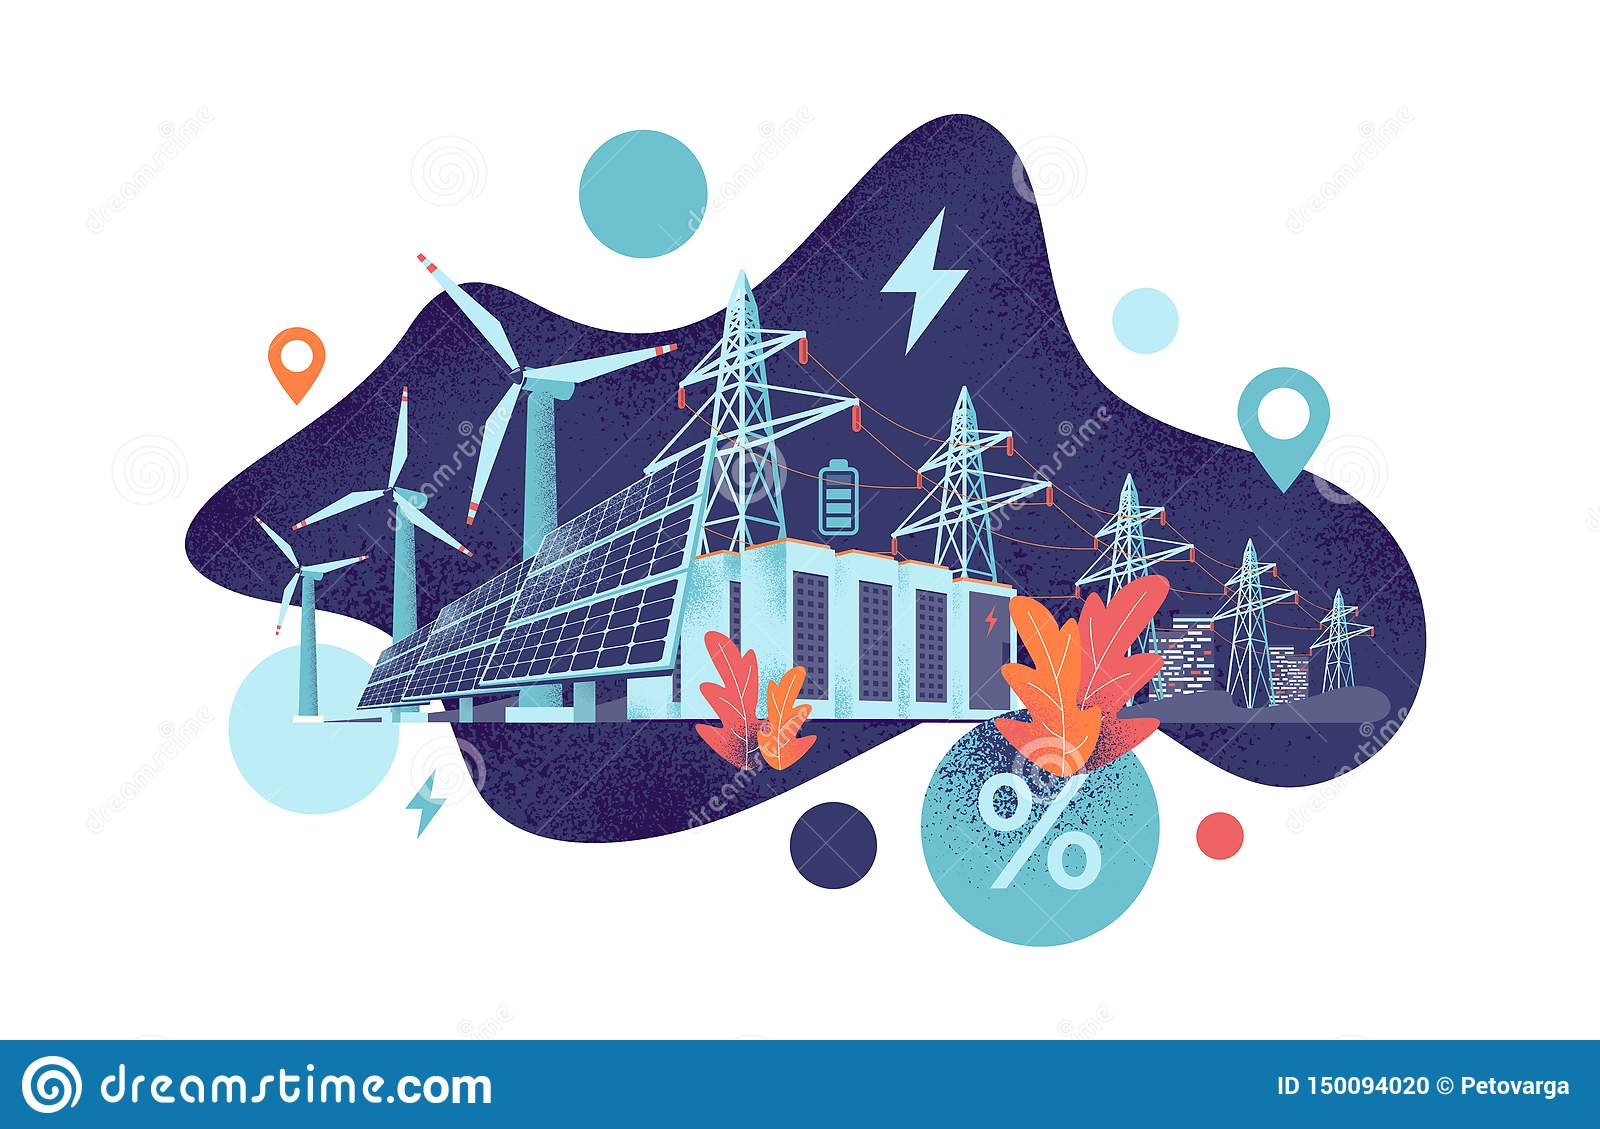 Renewable Solar And Wind Energy Battery Storage Smart Grid System With Power Lines Stock Vector Illustration Of Distribution Electric 150094020